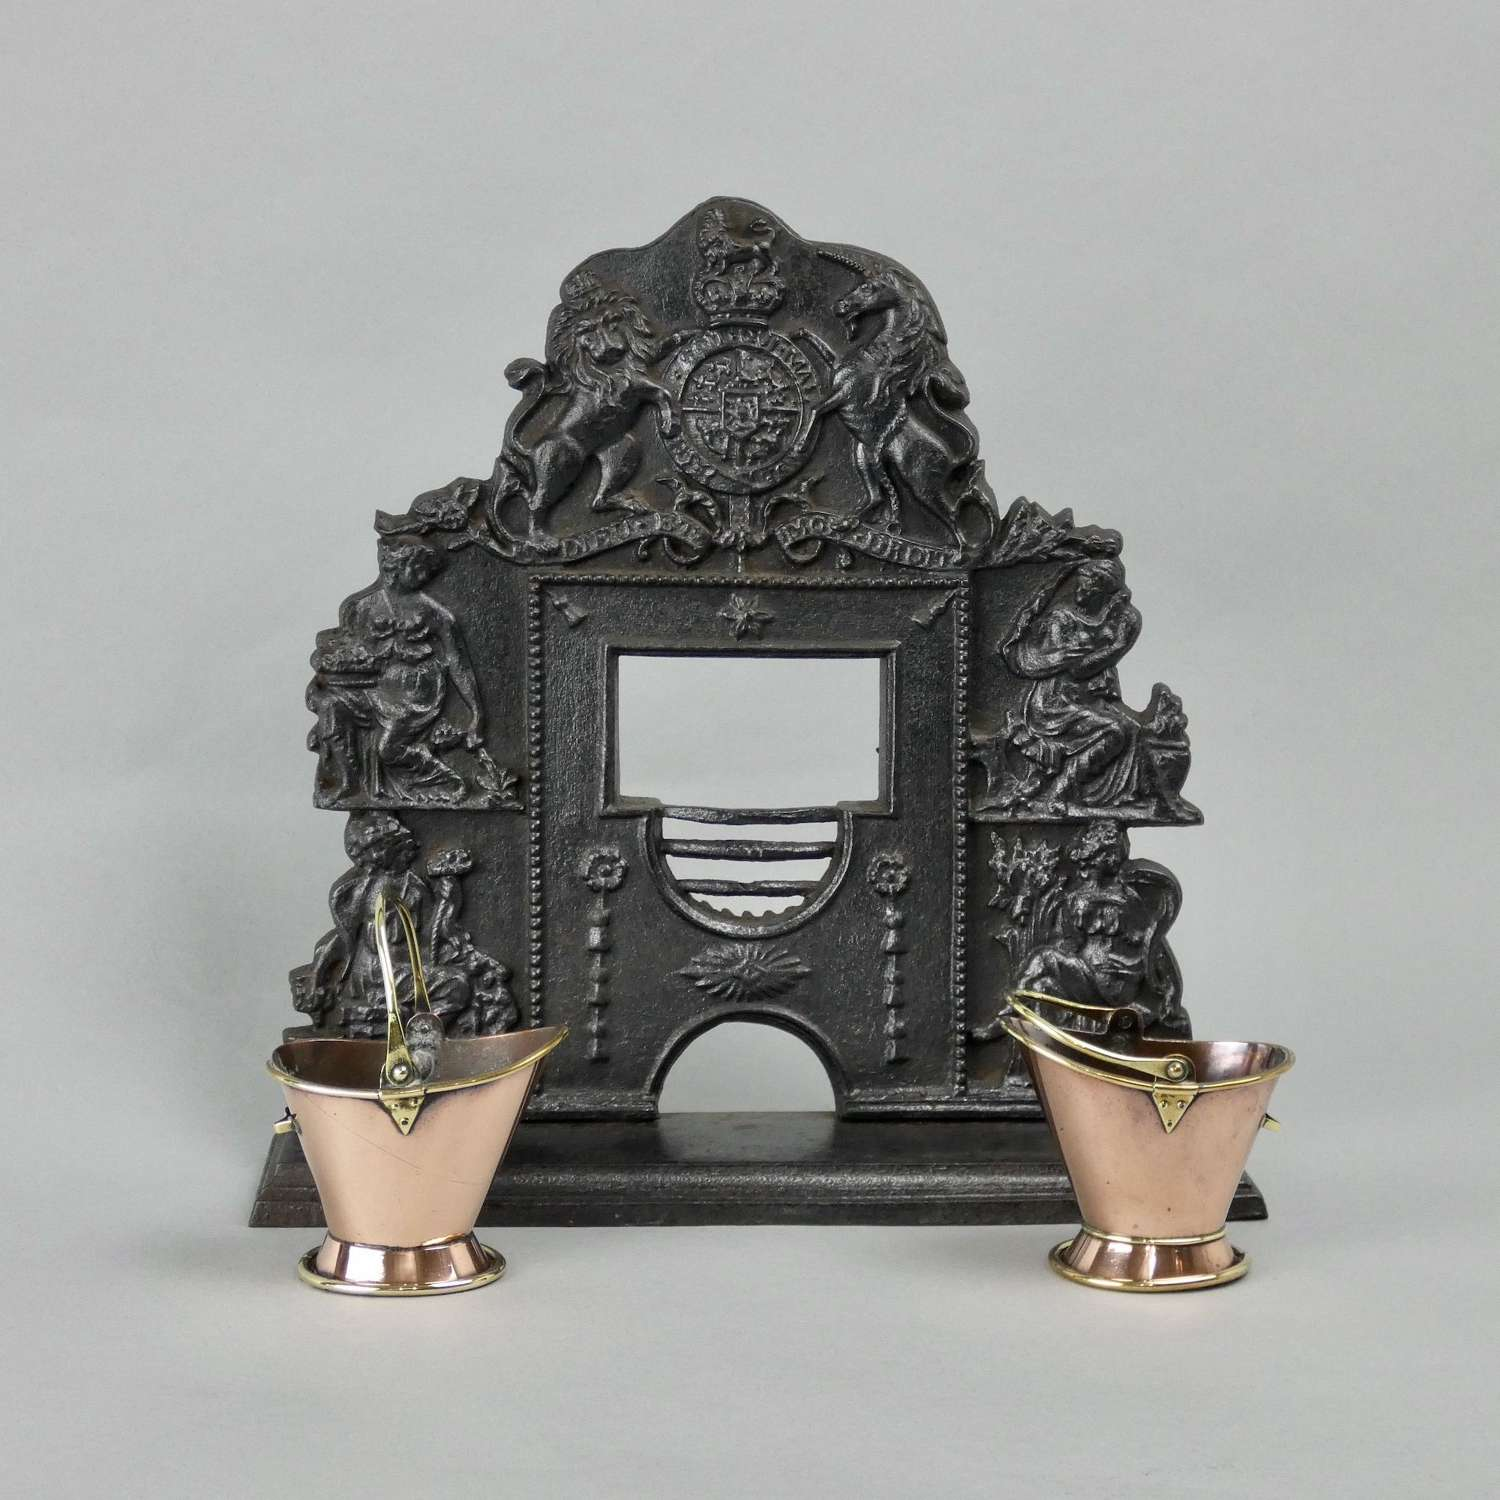 Miniature cast iron grate with Royal Coat of Arms